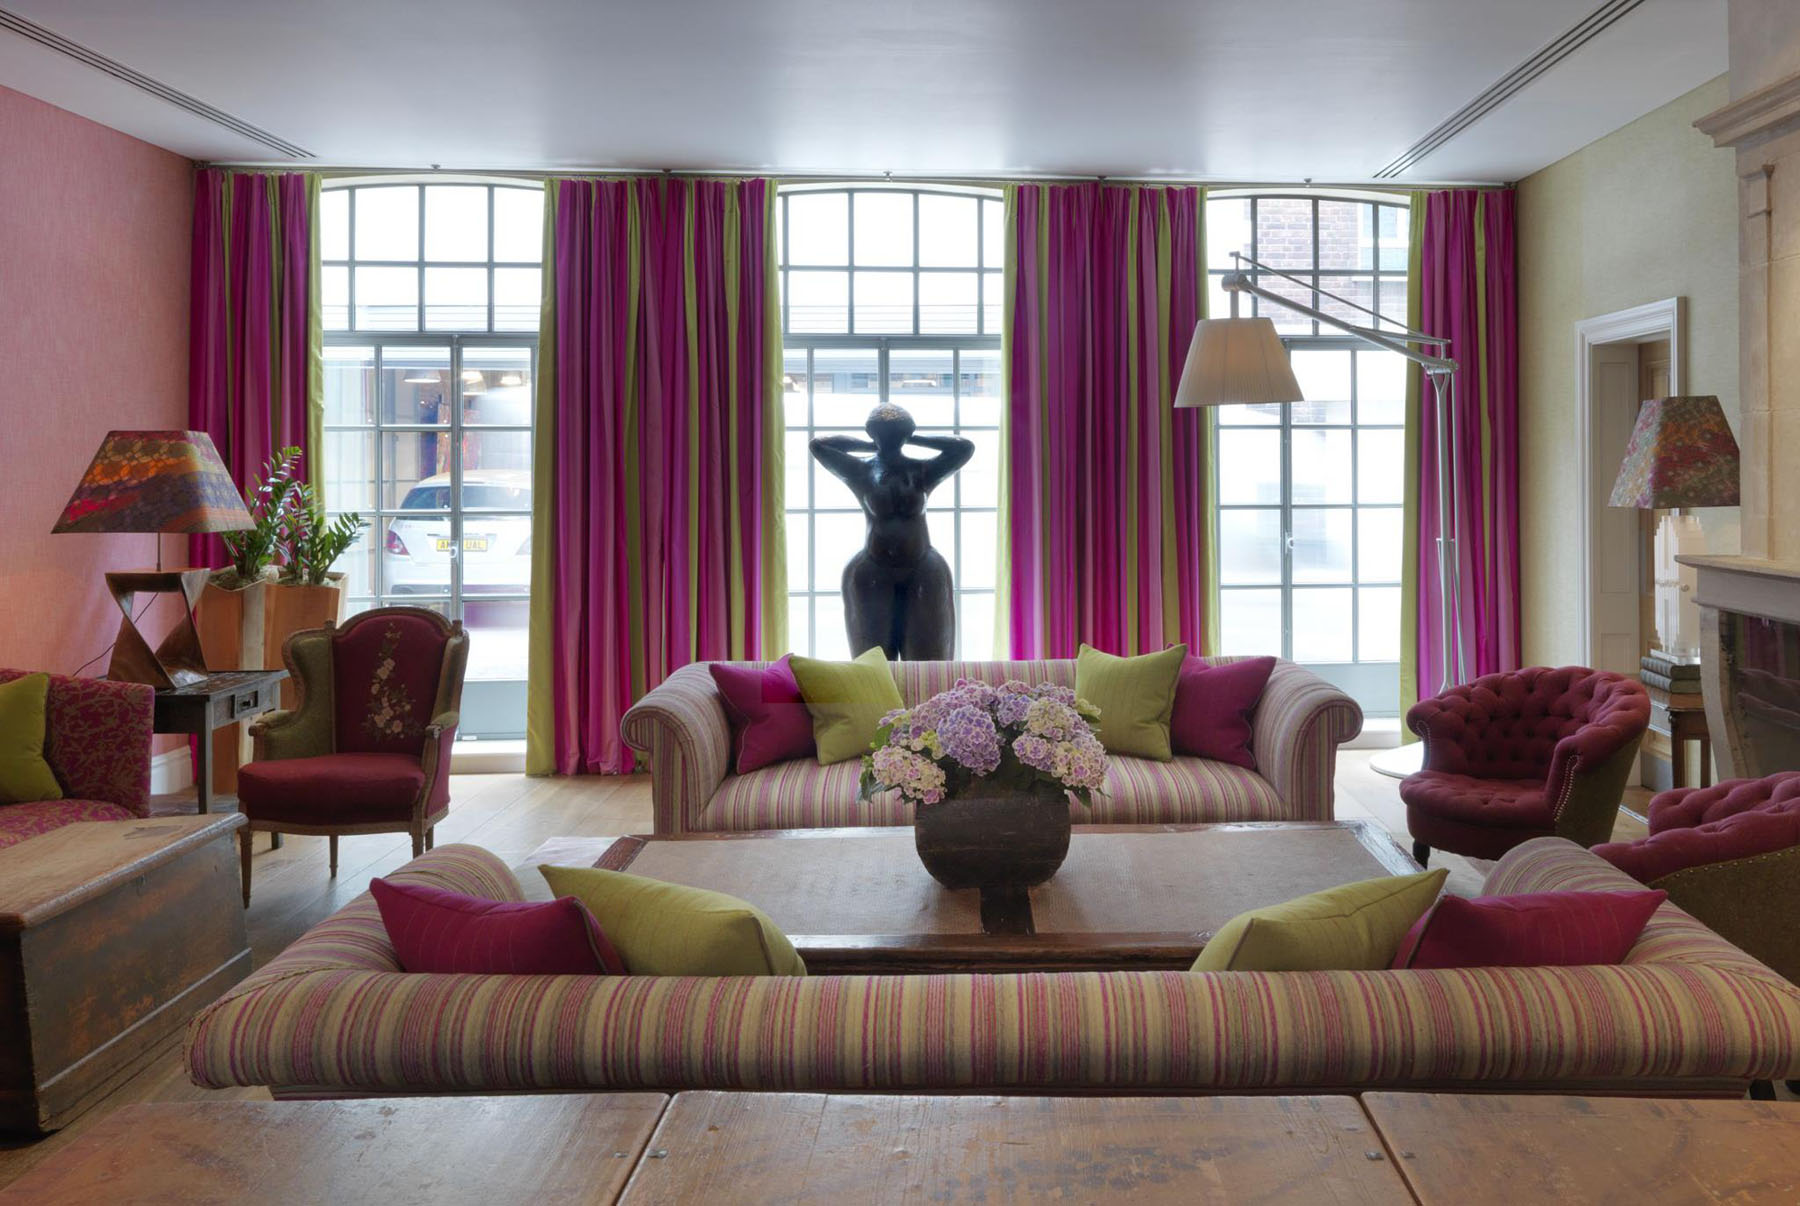 Hotel Interiors trendy soho hotel london interiors | idesignarch | interior design